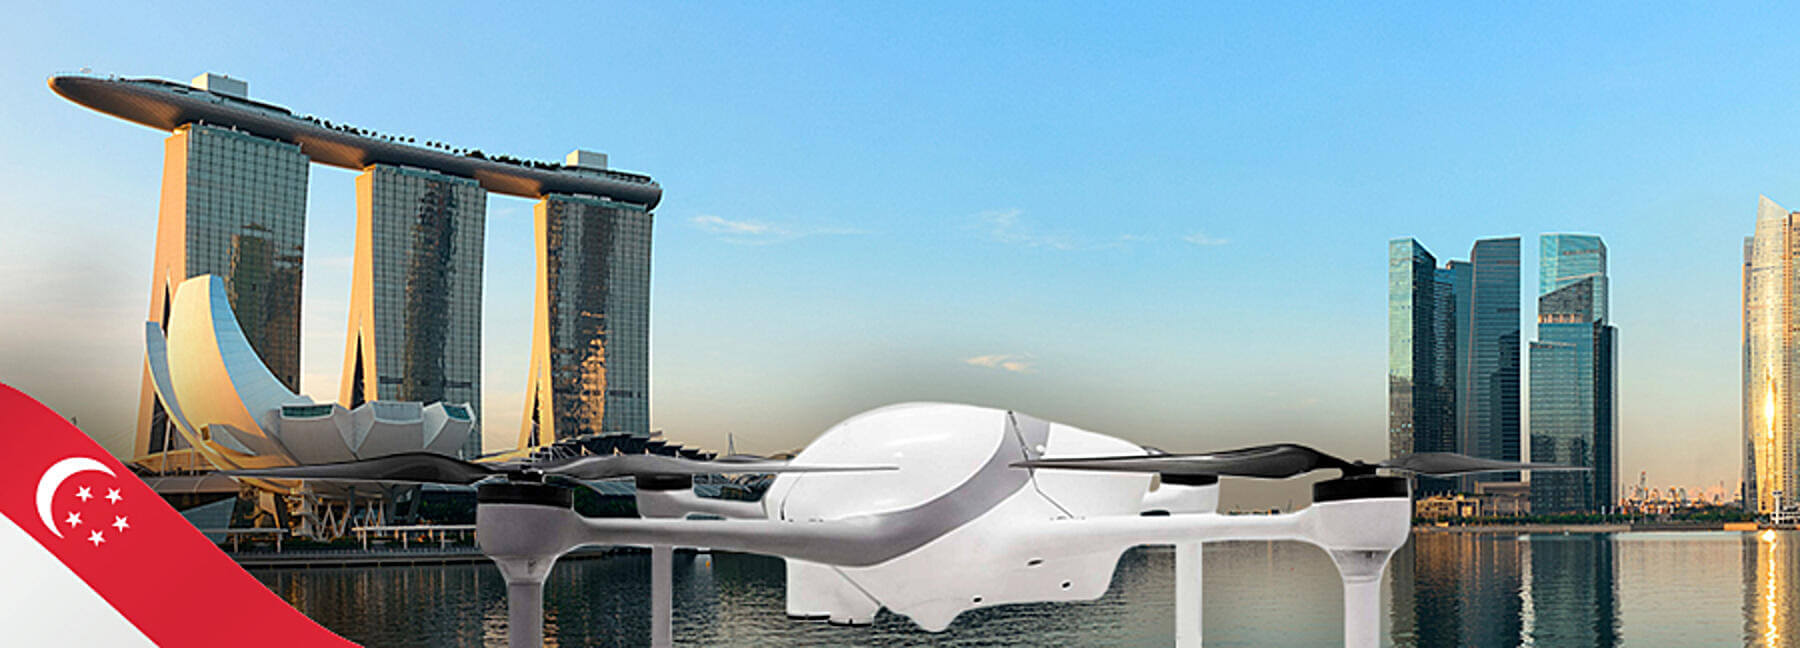 Airobotics Receives World's First Approval to Fly Automated, Commercial Drones Above a Major Metropolis, Flies Above Singapore - sUAS News - The Business of Drones